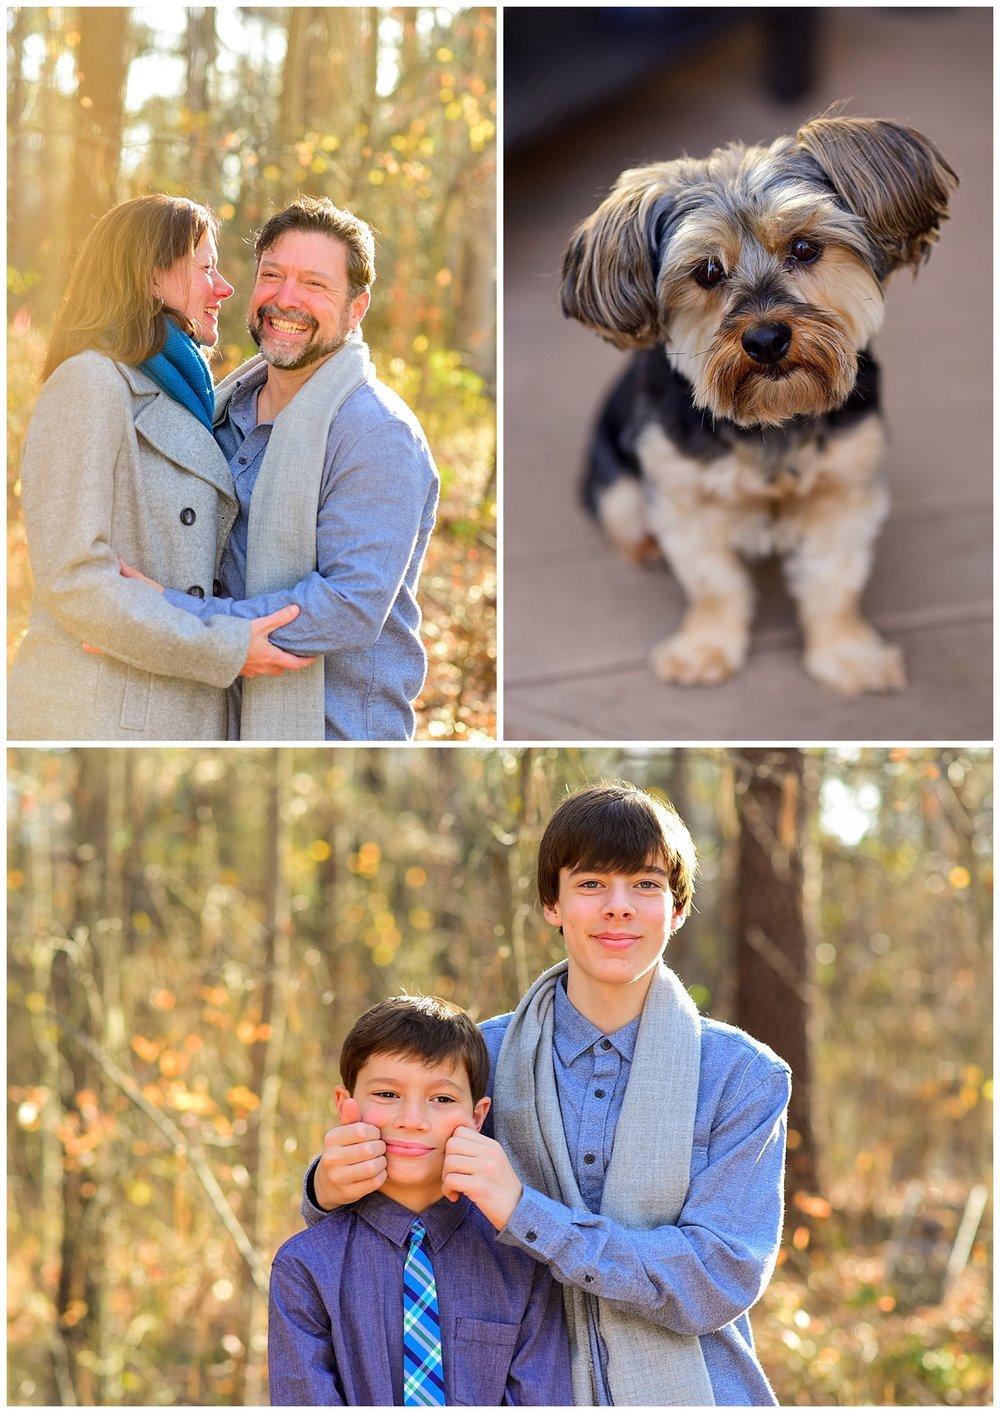 Cary, NC family portraits